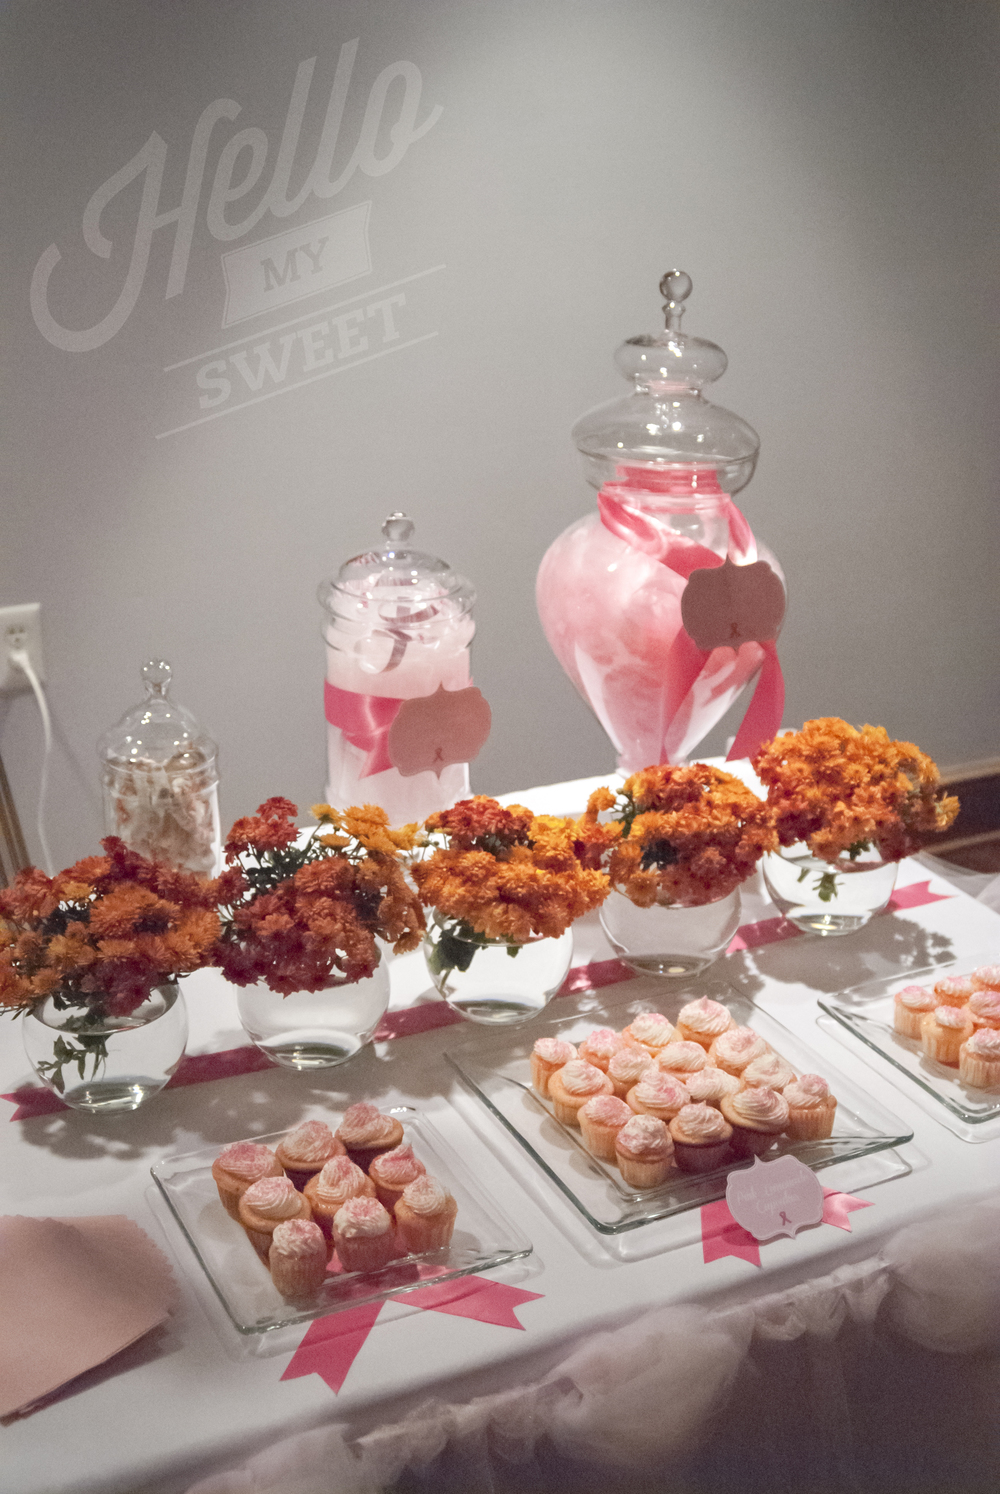 We filled up the large apothecary jars with pink feathers and tulle.